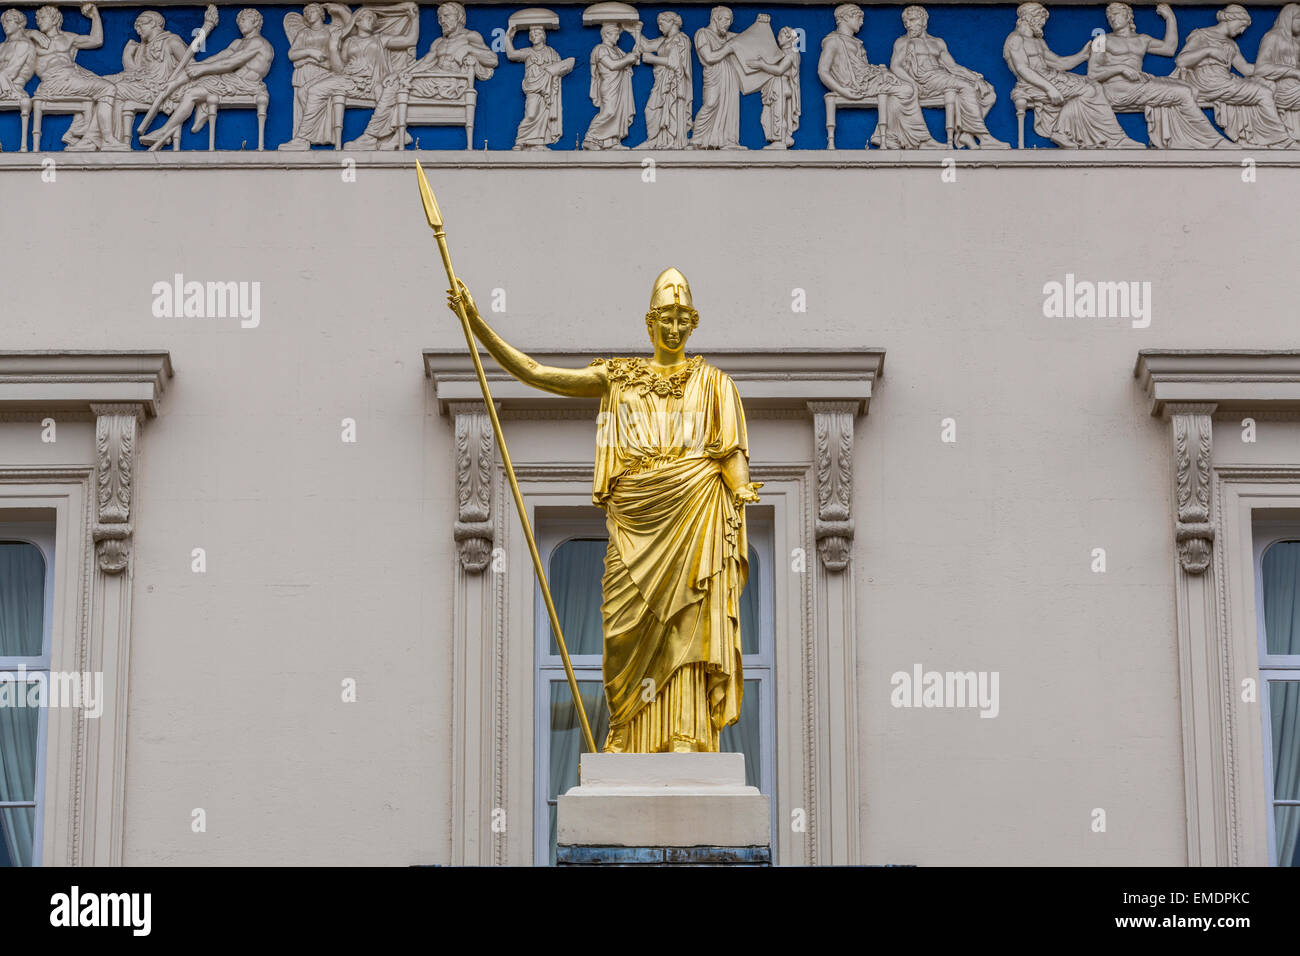 The classical goddess of wisdom Athena and Frieze of the Parthenon adorning the Athenaeum private members club in - Stock Image